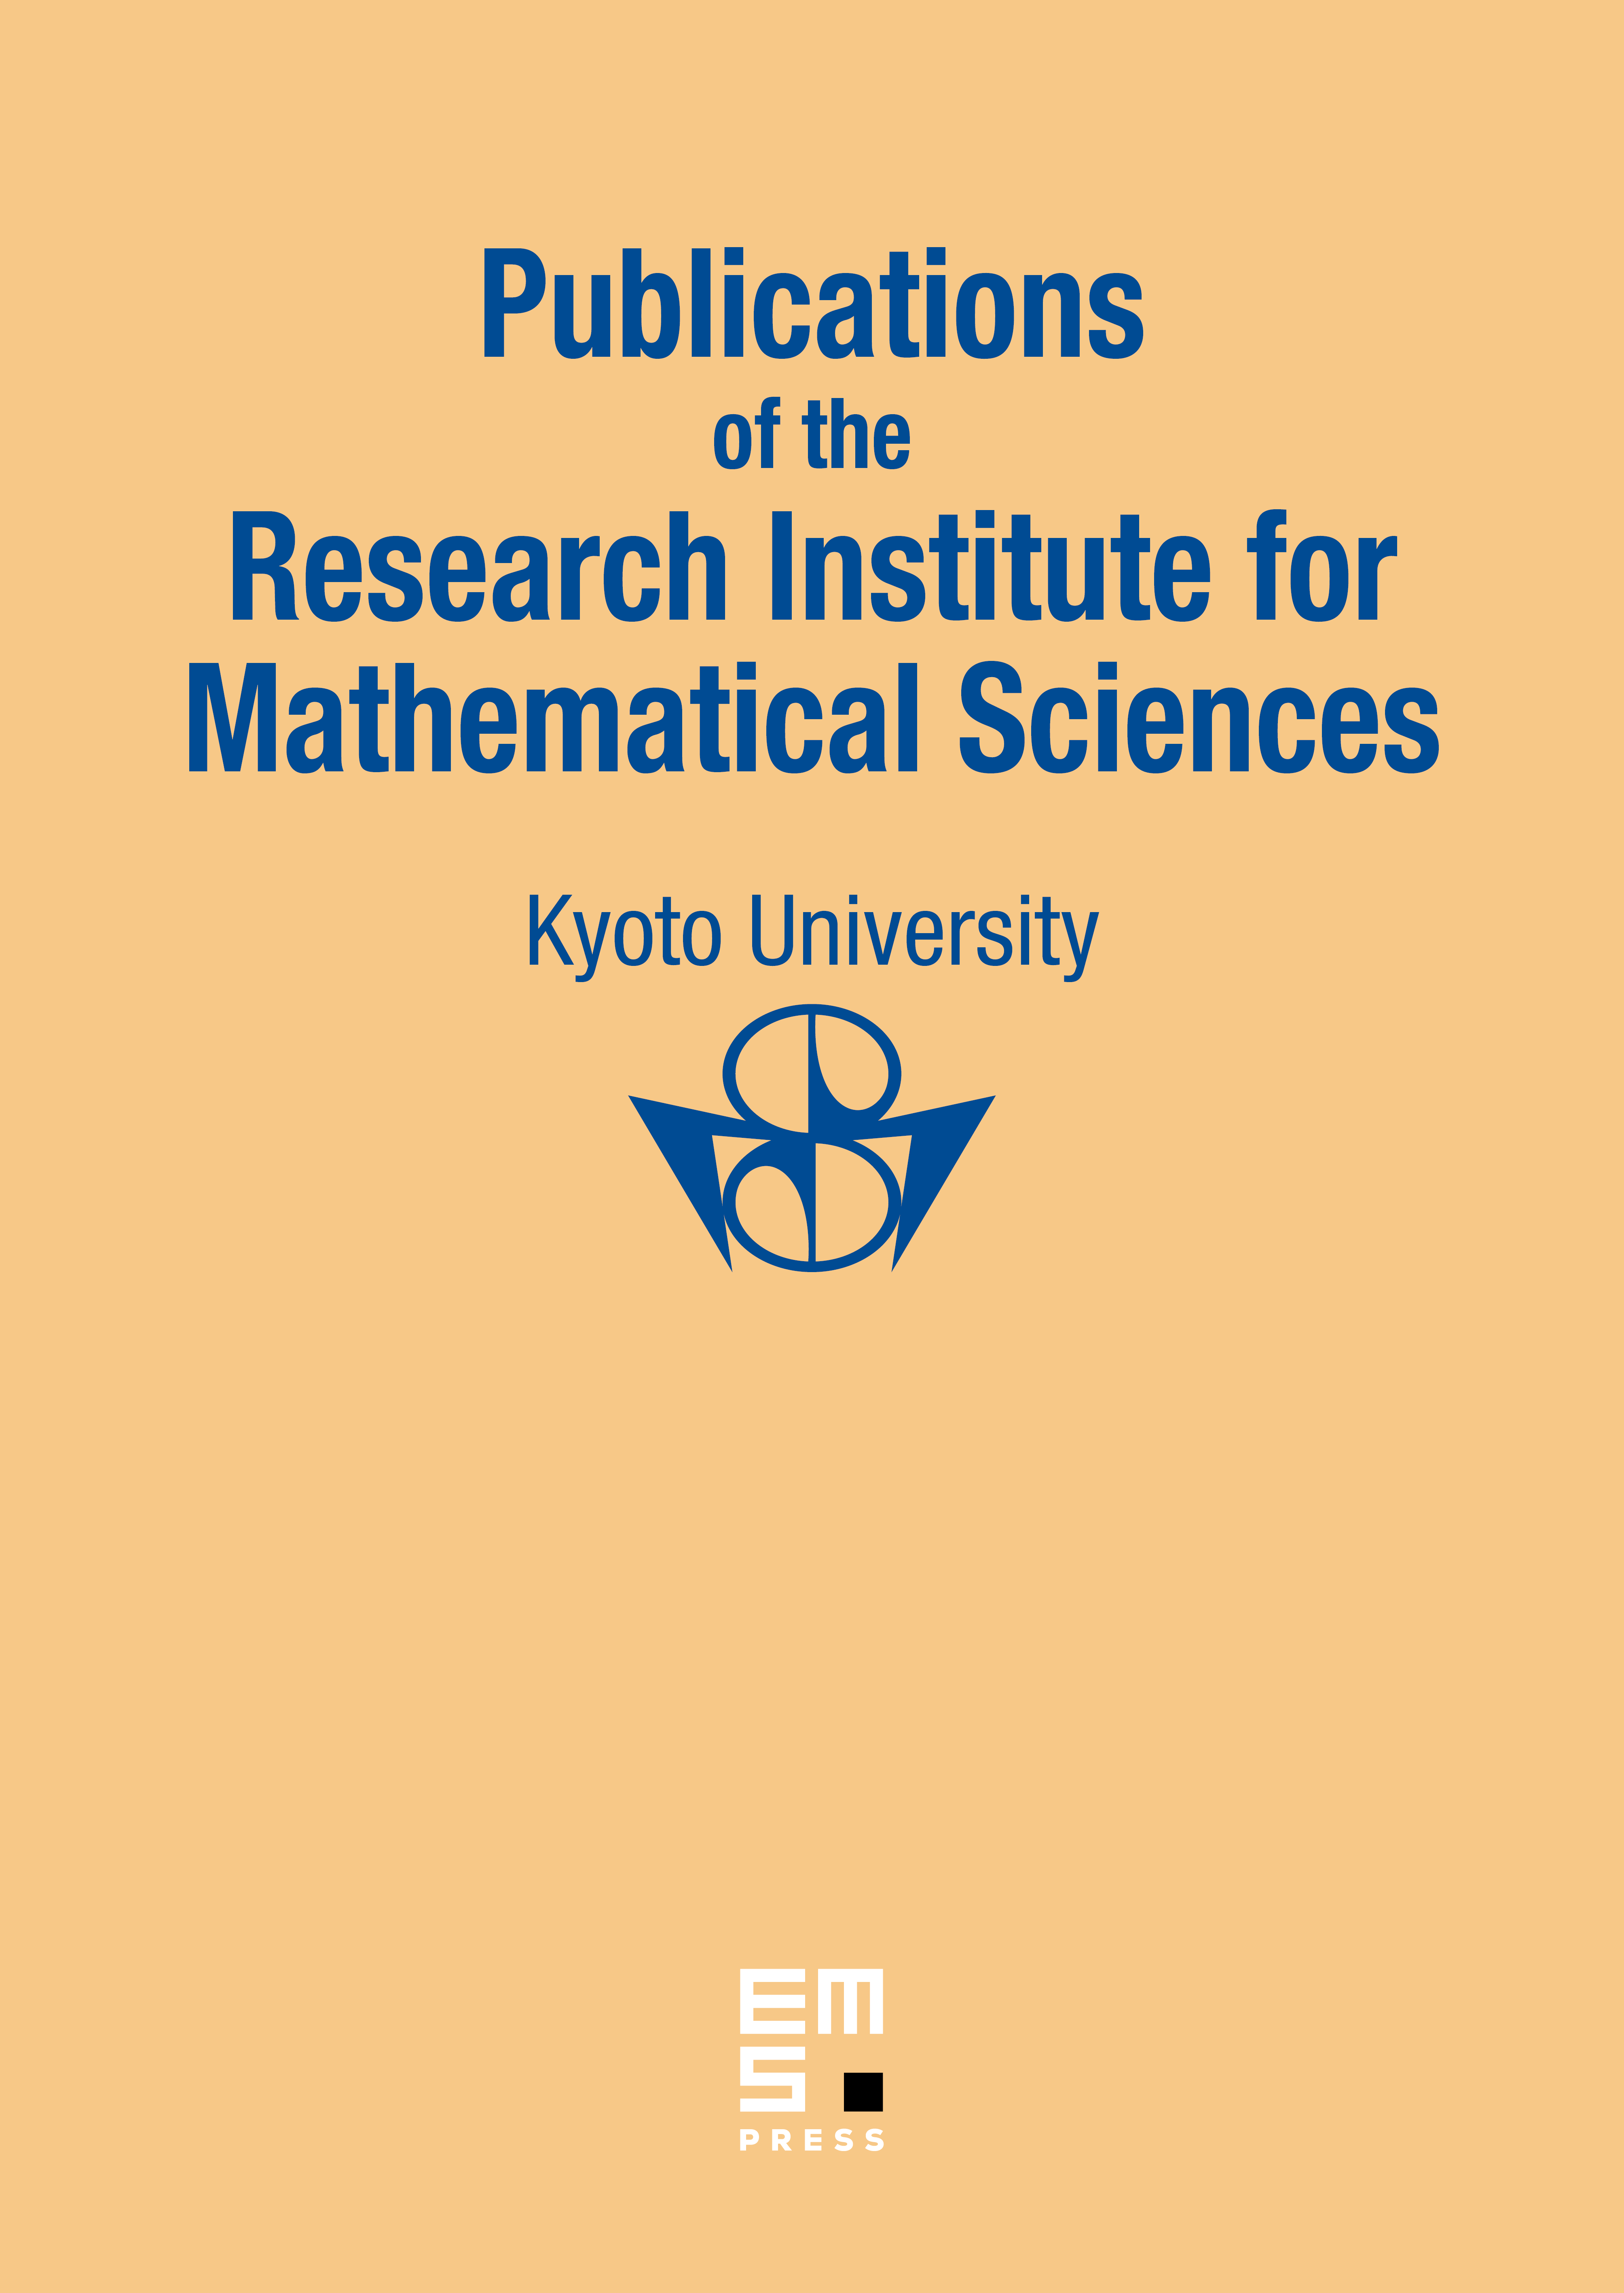 Publ. Res. Inst. Math. Sci. cover